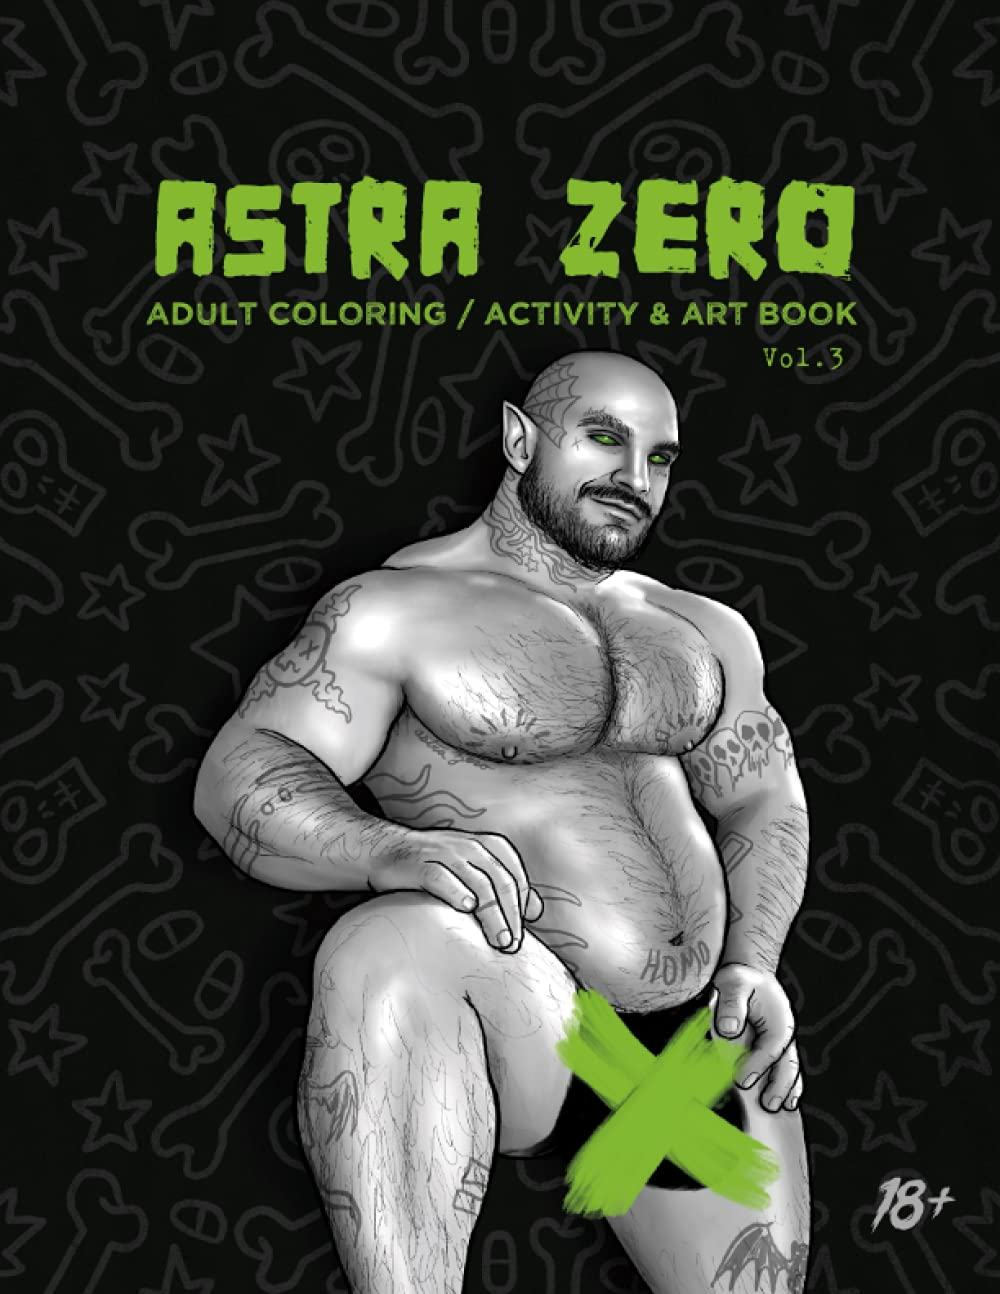 """Featured image for """"Astra Zero : Adult Coloring, Activity & Art Book Vol.3"""""""